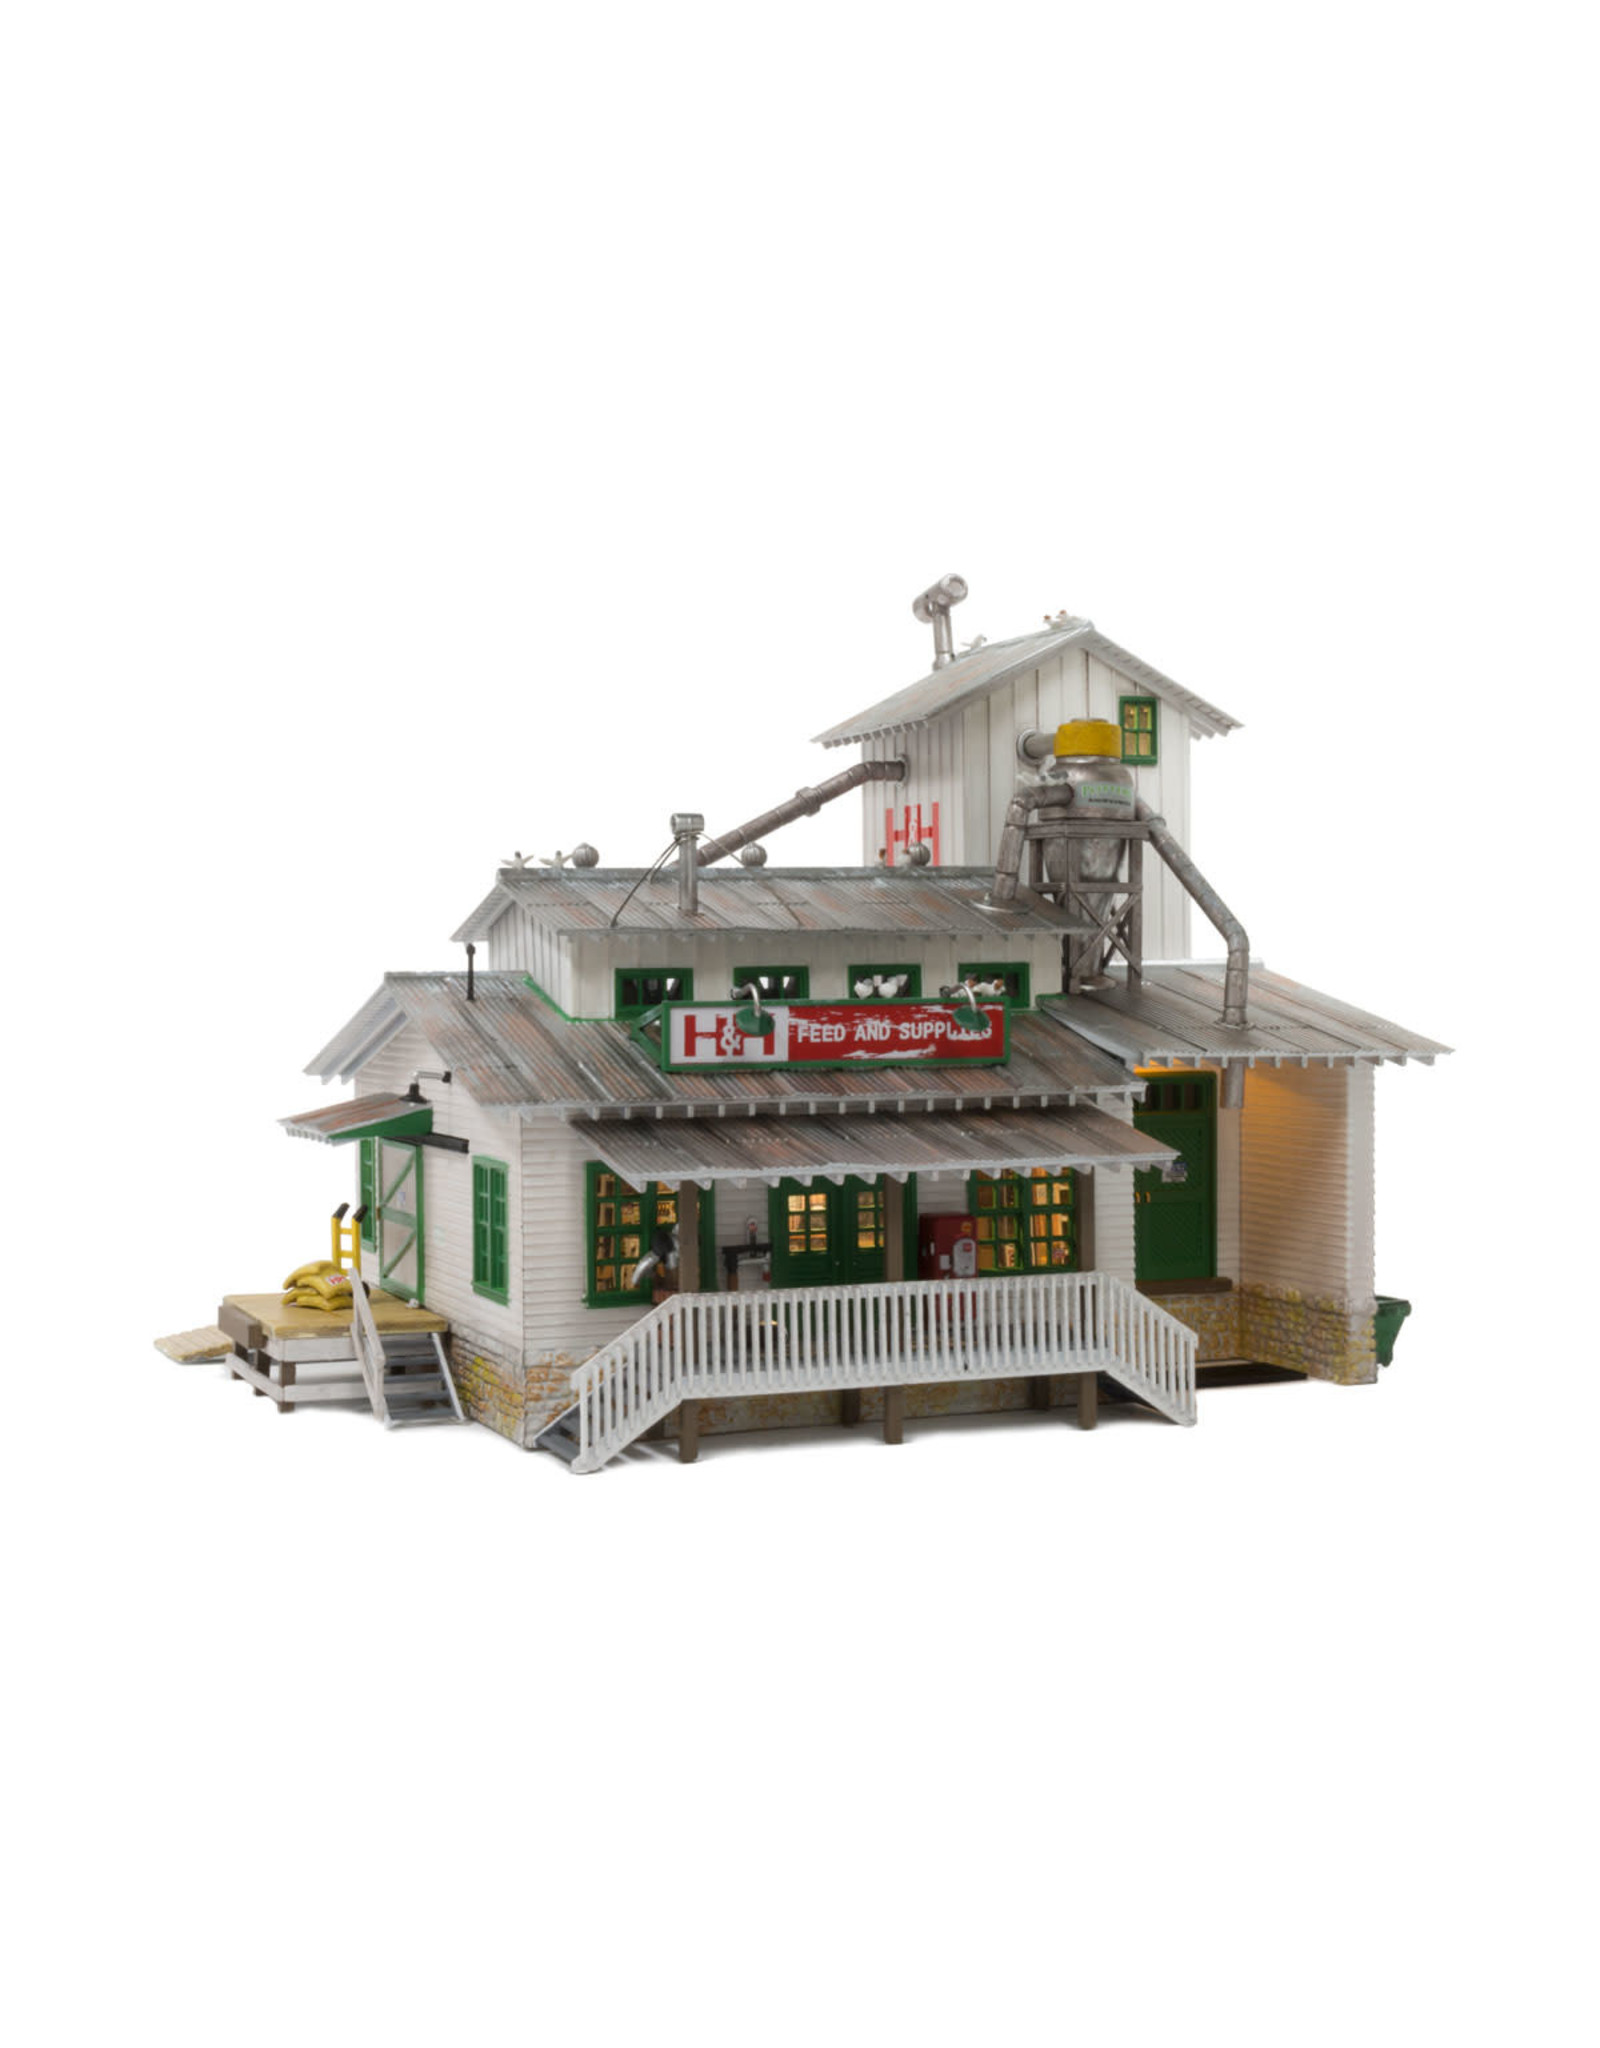 Woodland Scenic HO Built-Up H&H Feed Mill